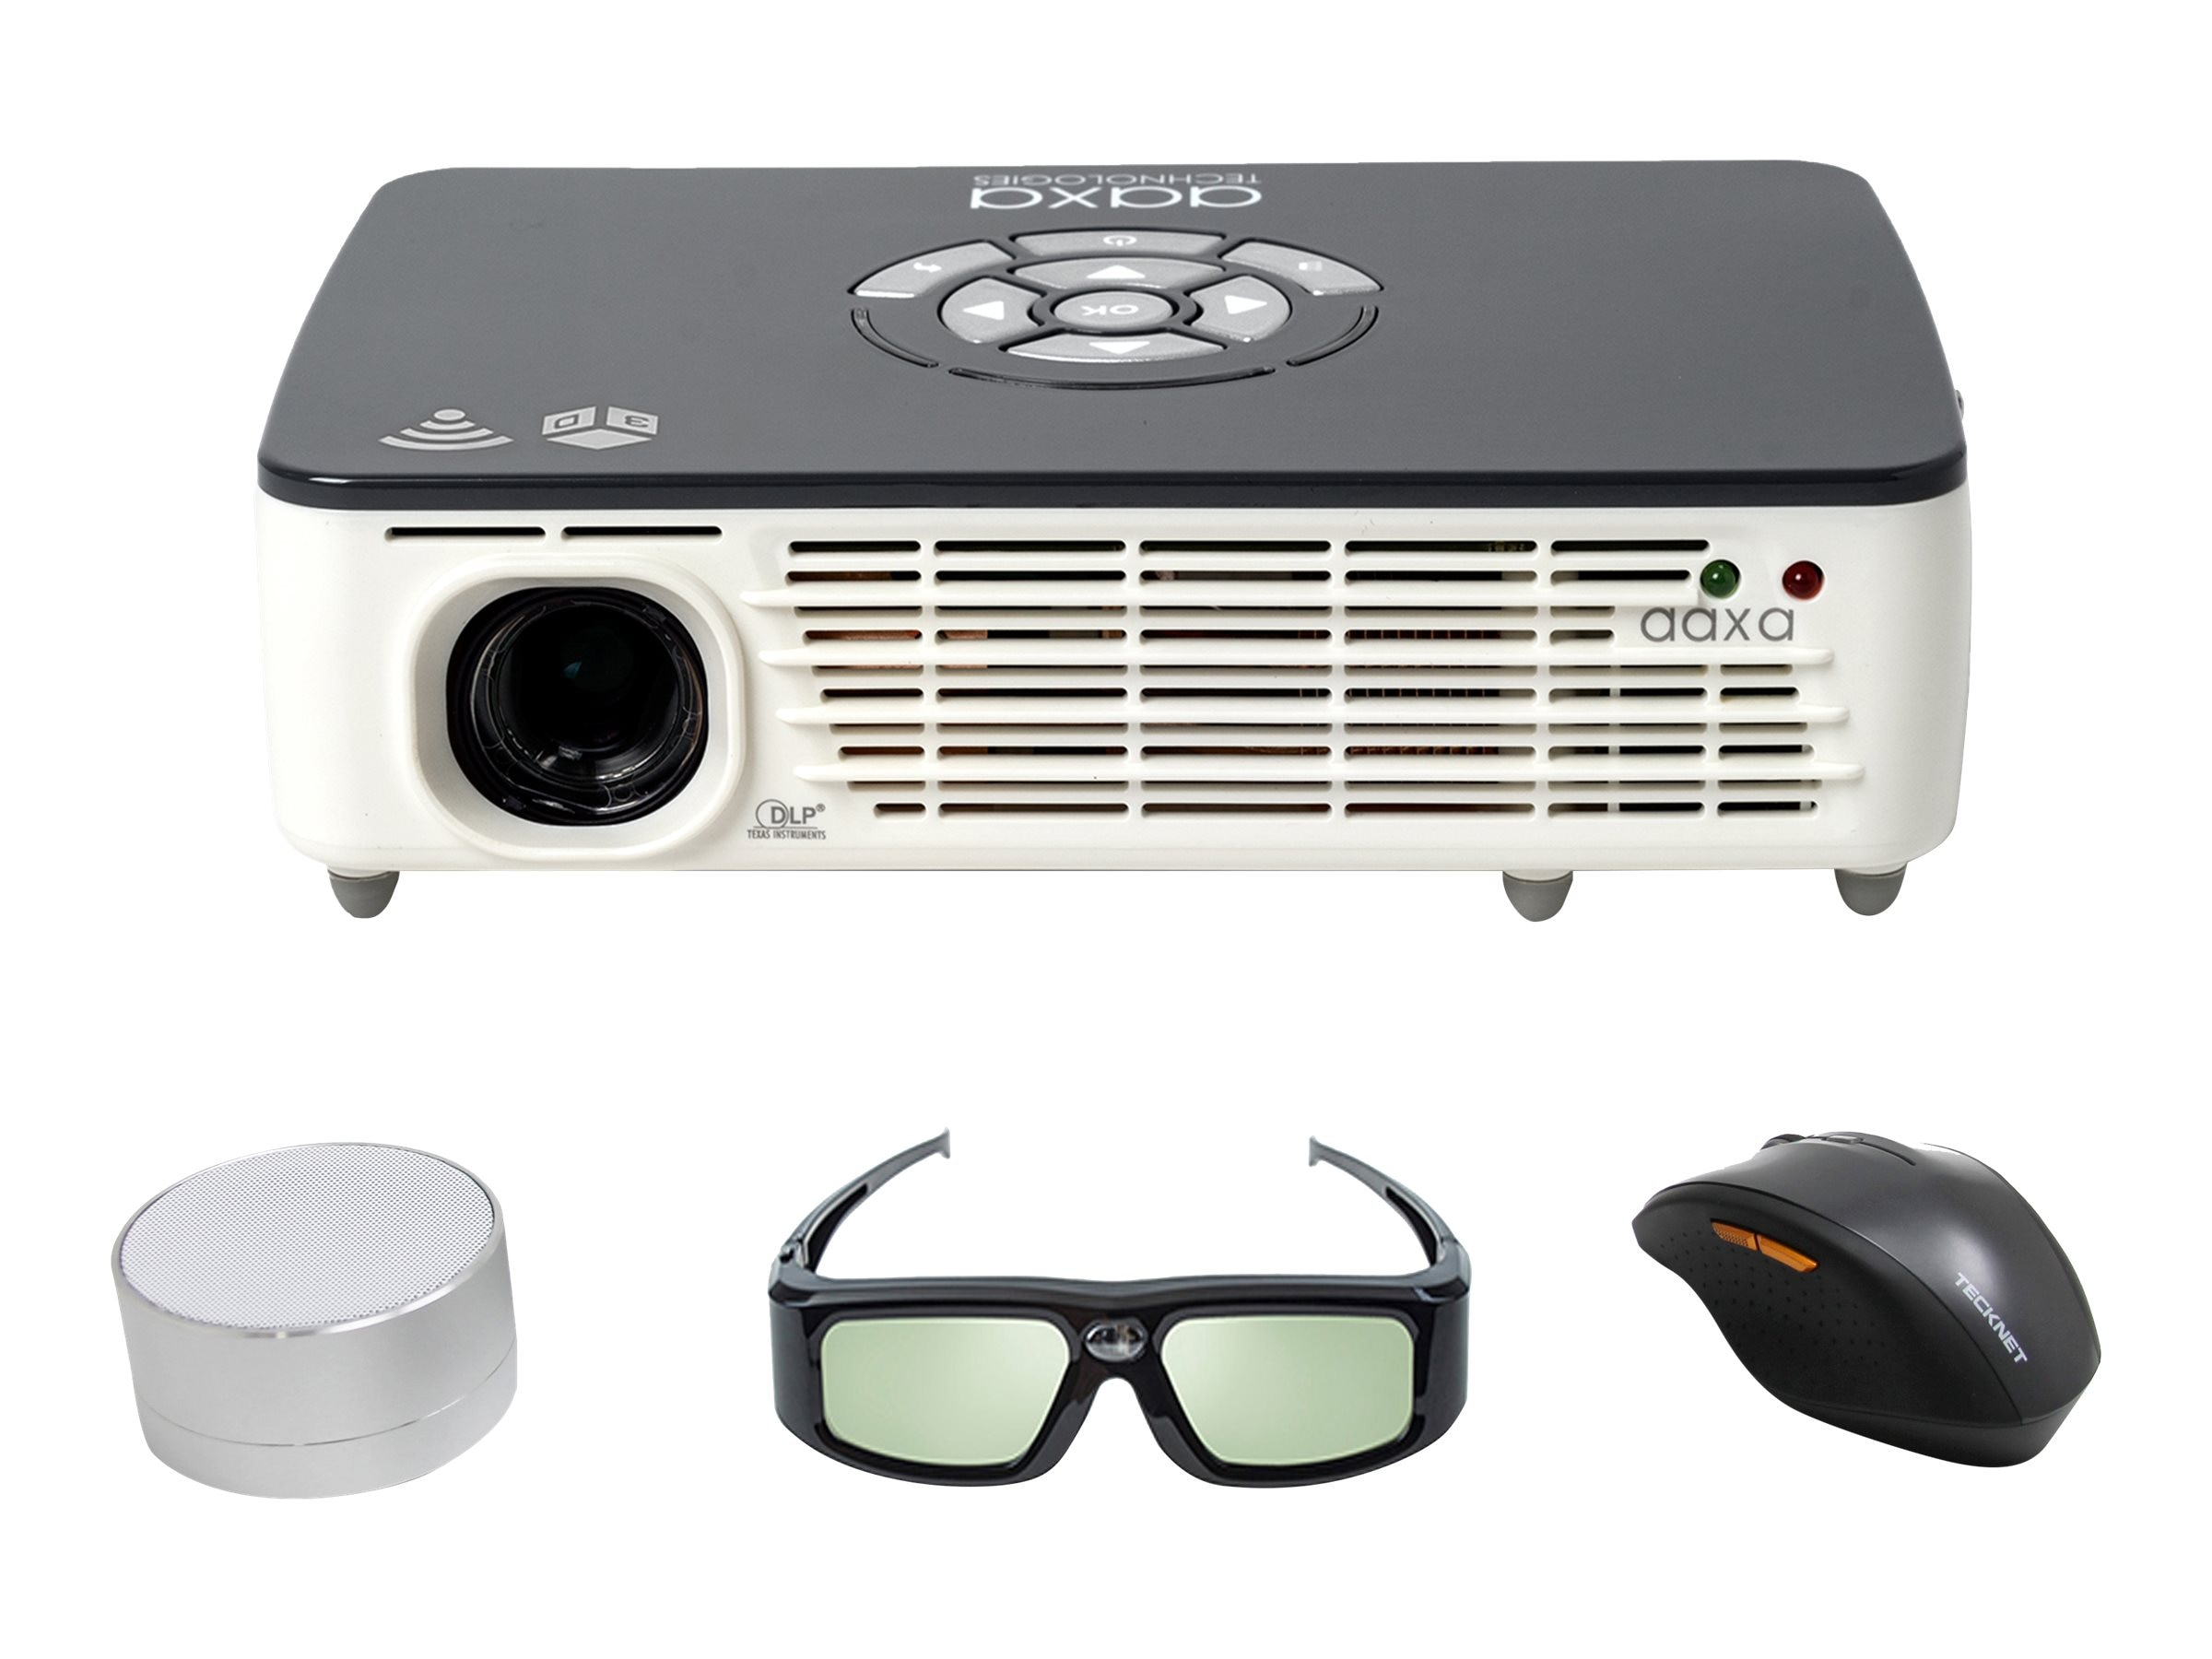 Aaxa P450 Pro WXGA 3D DLP Pico Projector with Speakers, 500 Lumens, White Gray